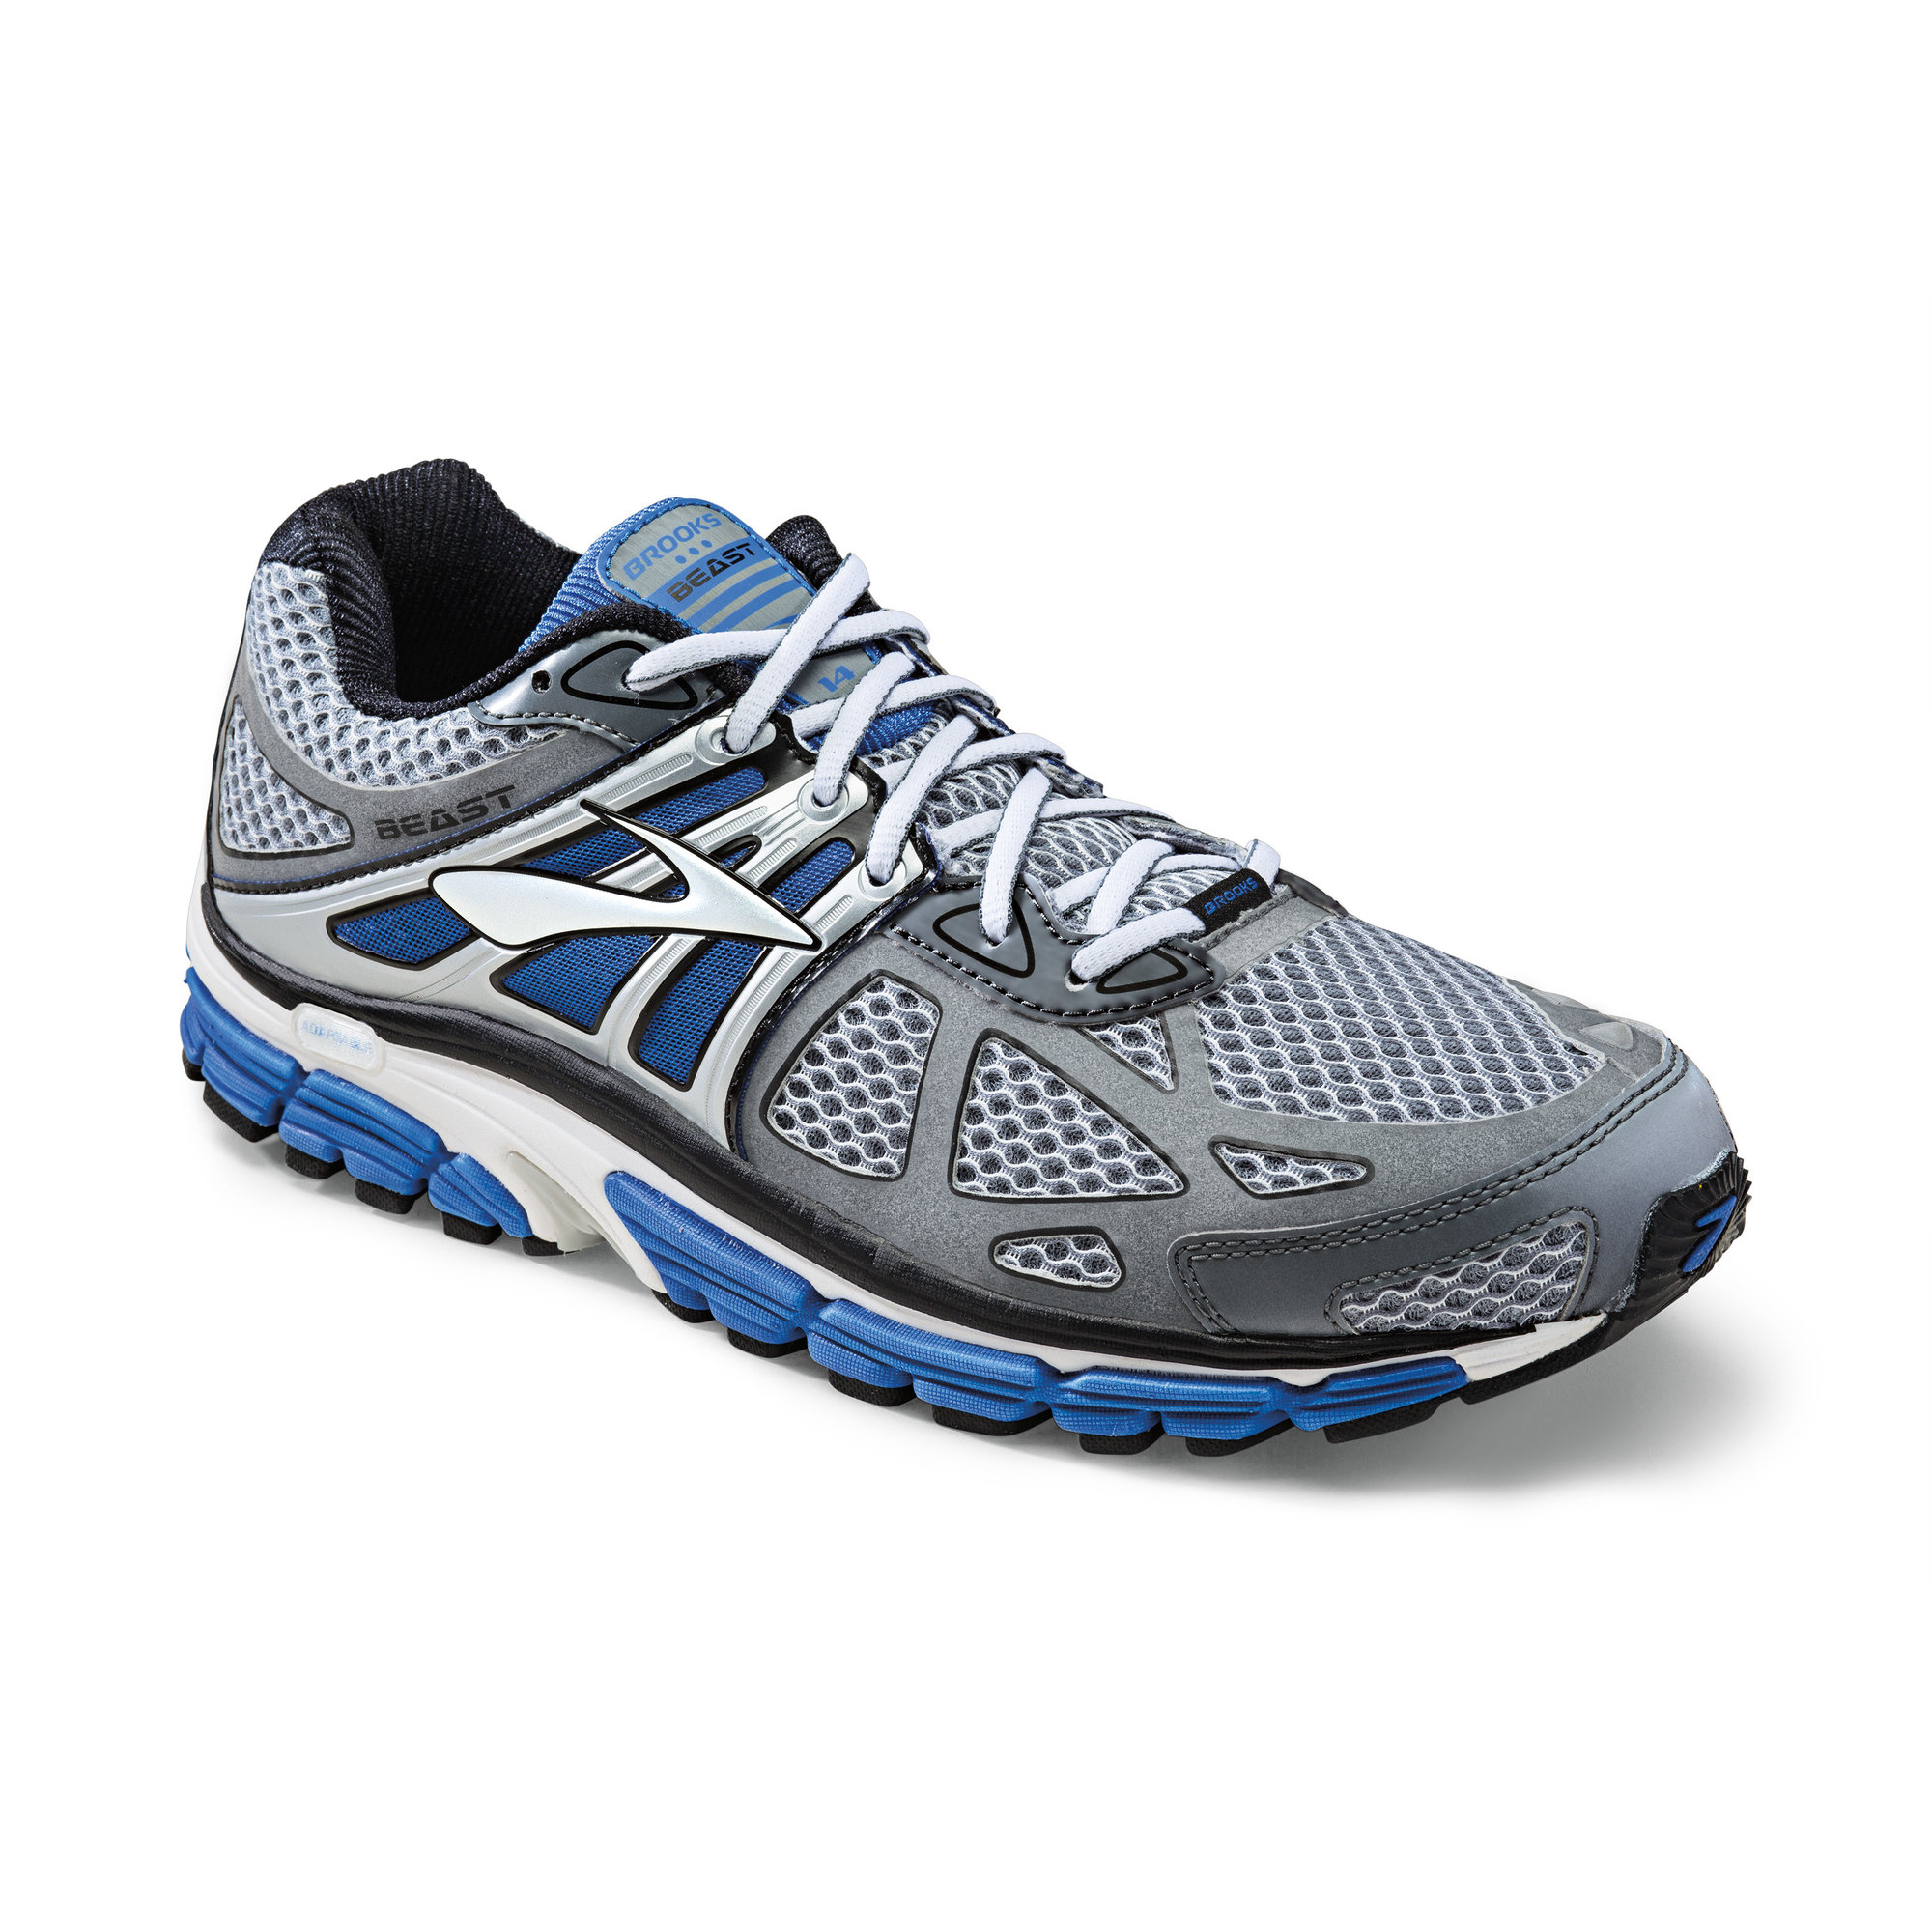 Brooks Beast 14 in Grau, Blau